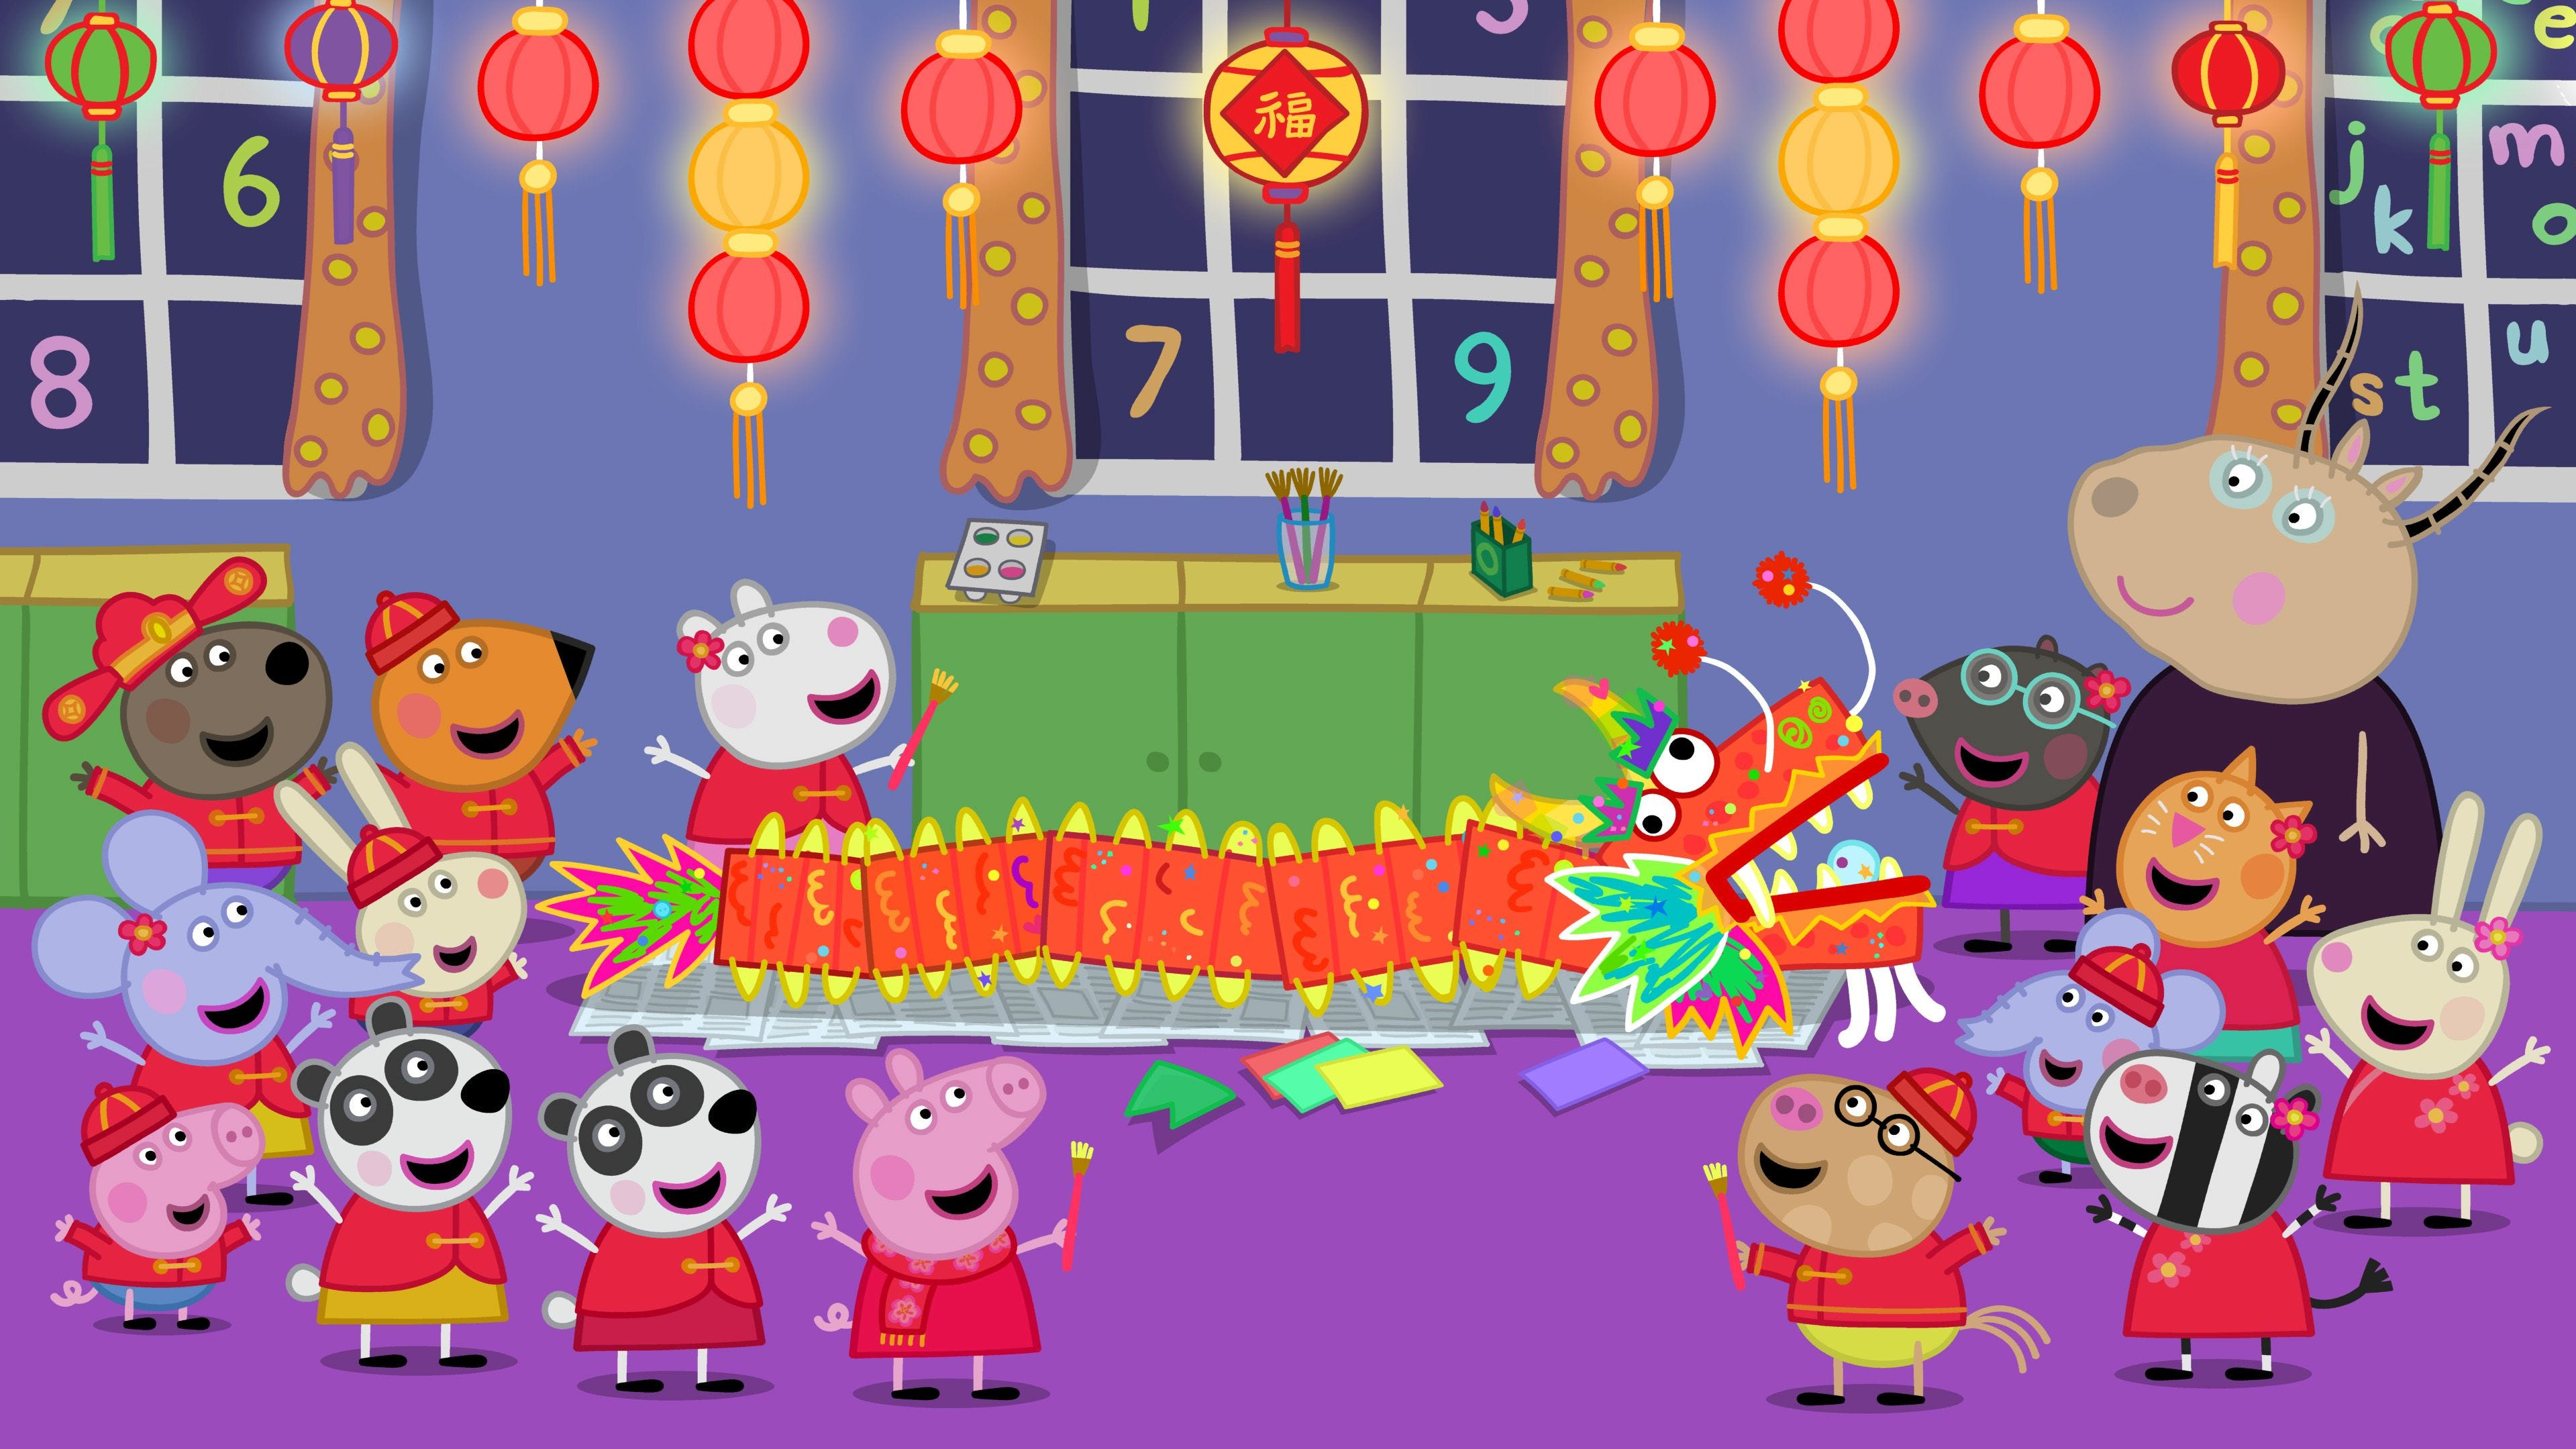 'Peppa Pig' rings in Chinese New Year with two new Panda characters